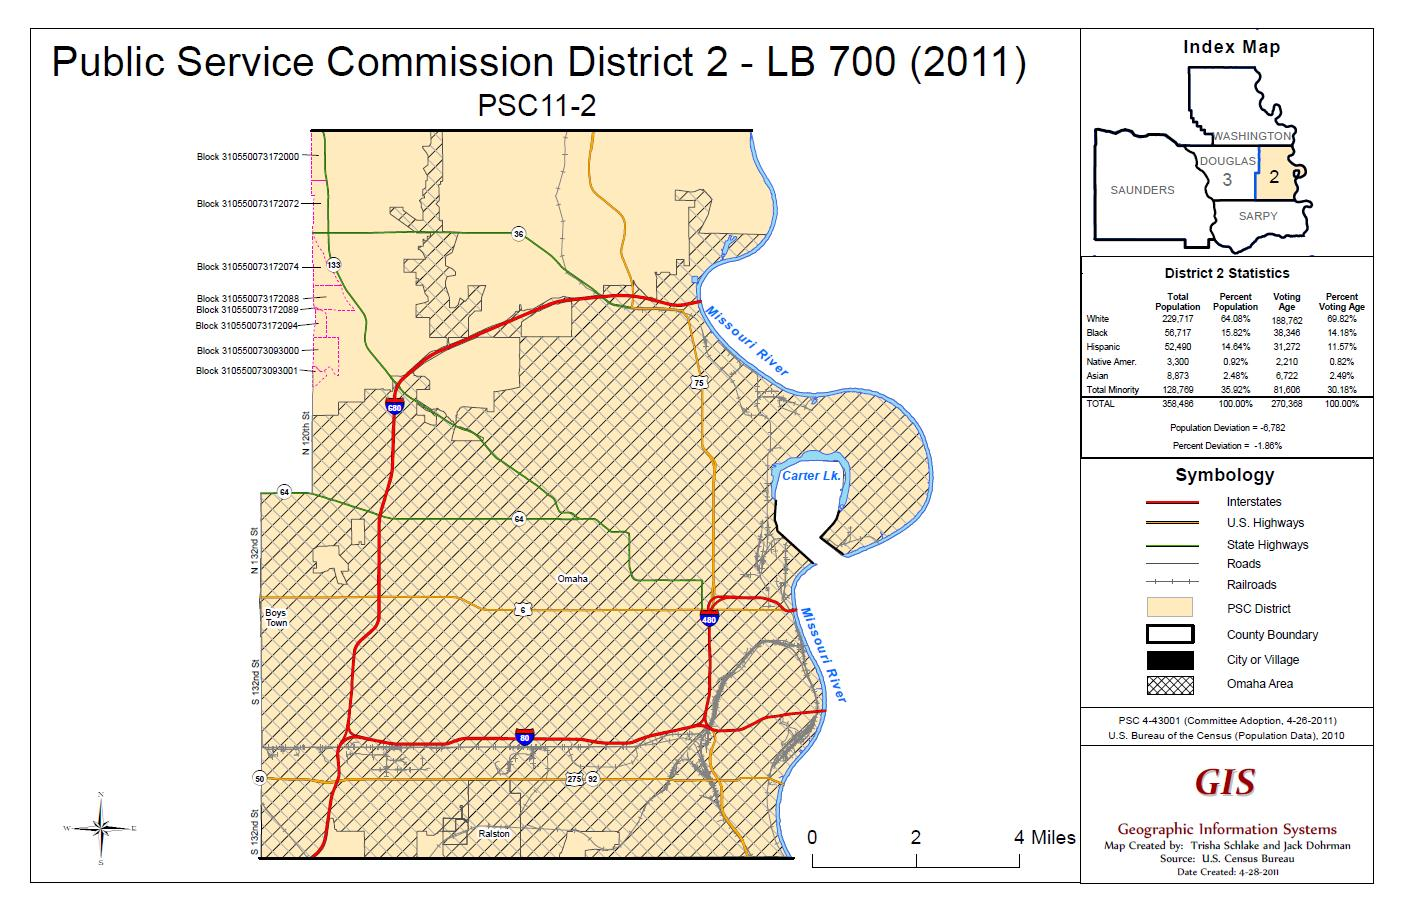 PSC District 2 Map